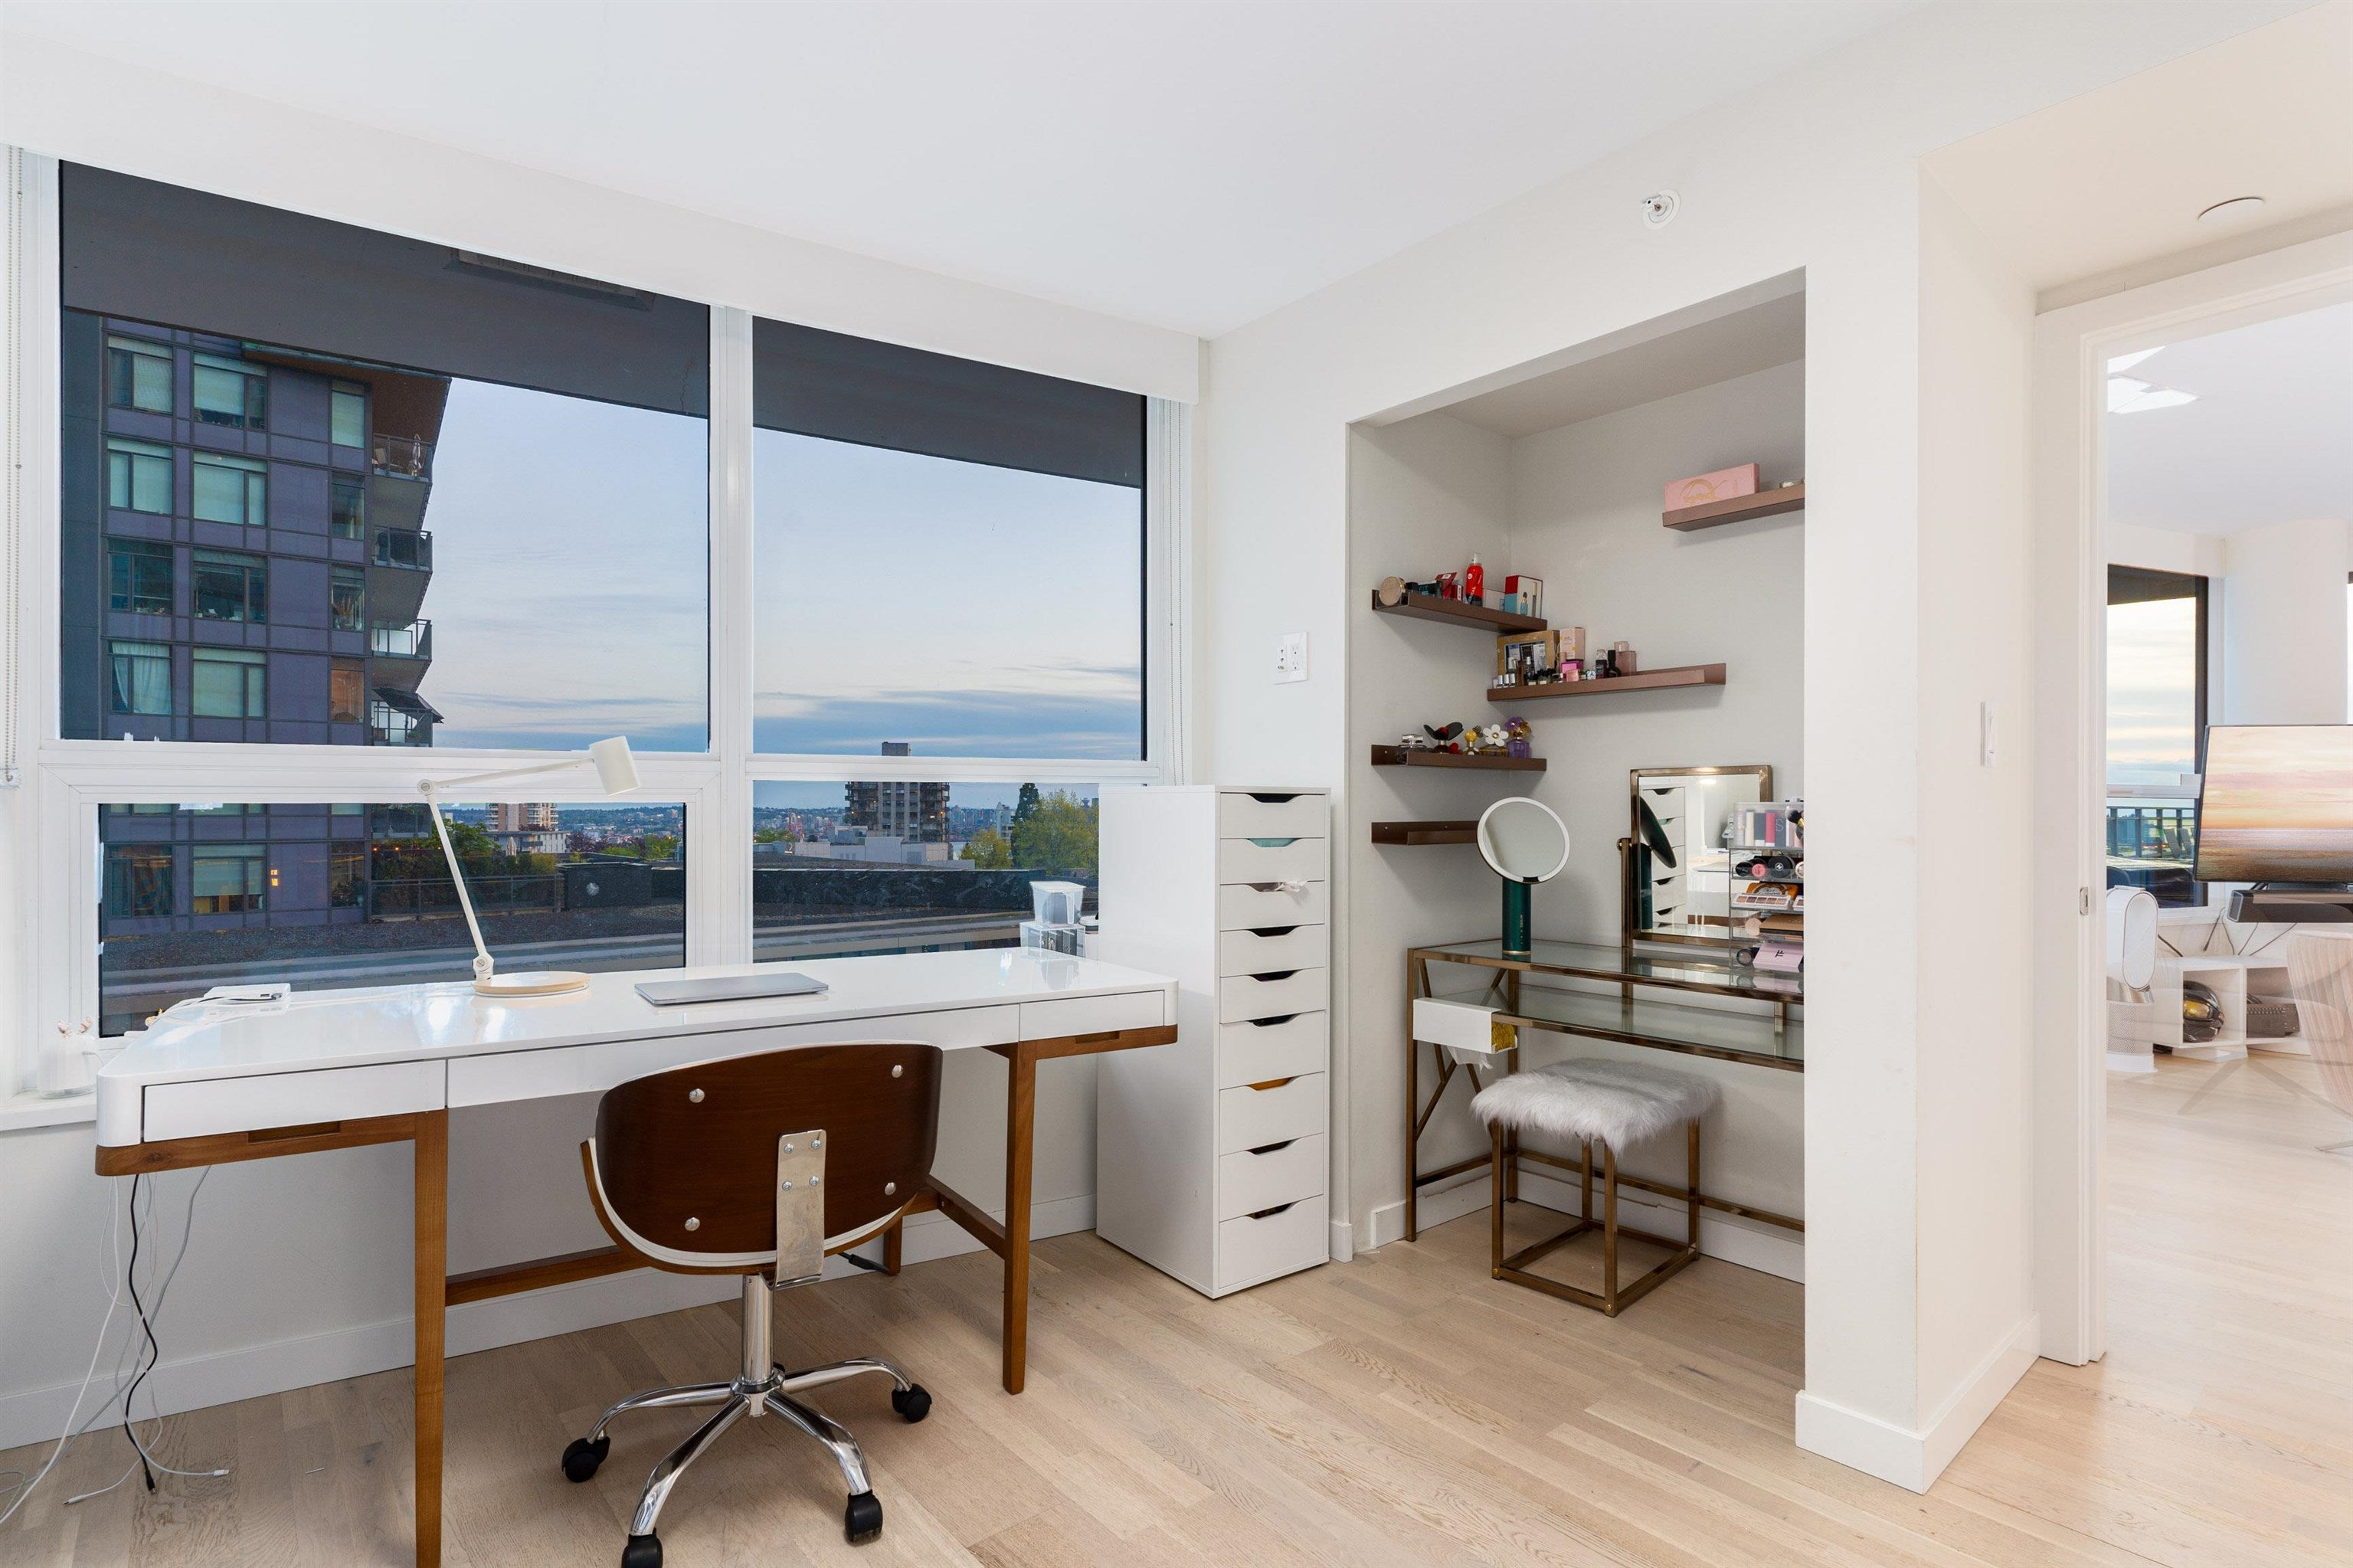 306 112 E 13TH STREET - Central Lonsdale Apartment/Condo for sale, 2 Bedrooms (R2619655) - #21